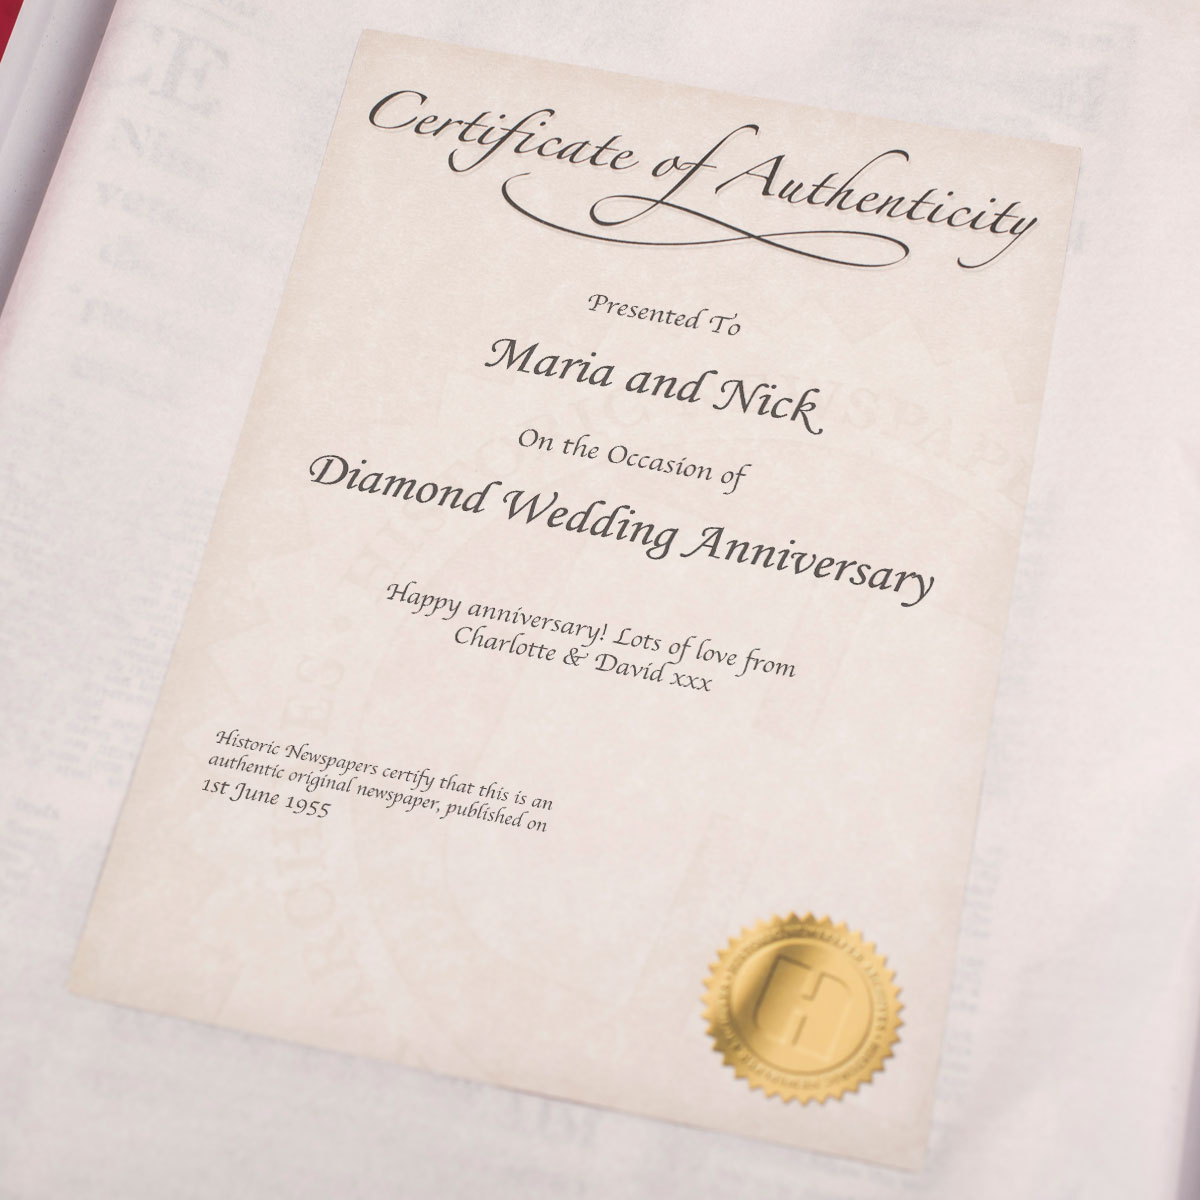 Diamond Wedding Anniversary Gift Ideas Uk : ... - Diamond Anniversary Newspaper Gifts by GettingPersonal.co.uk